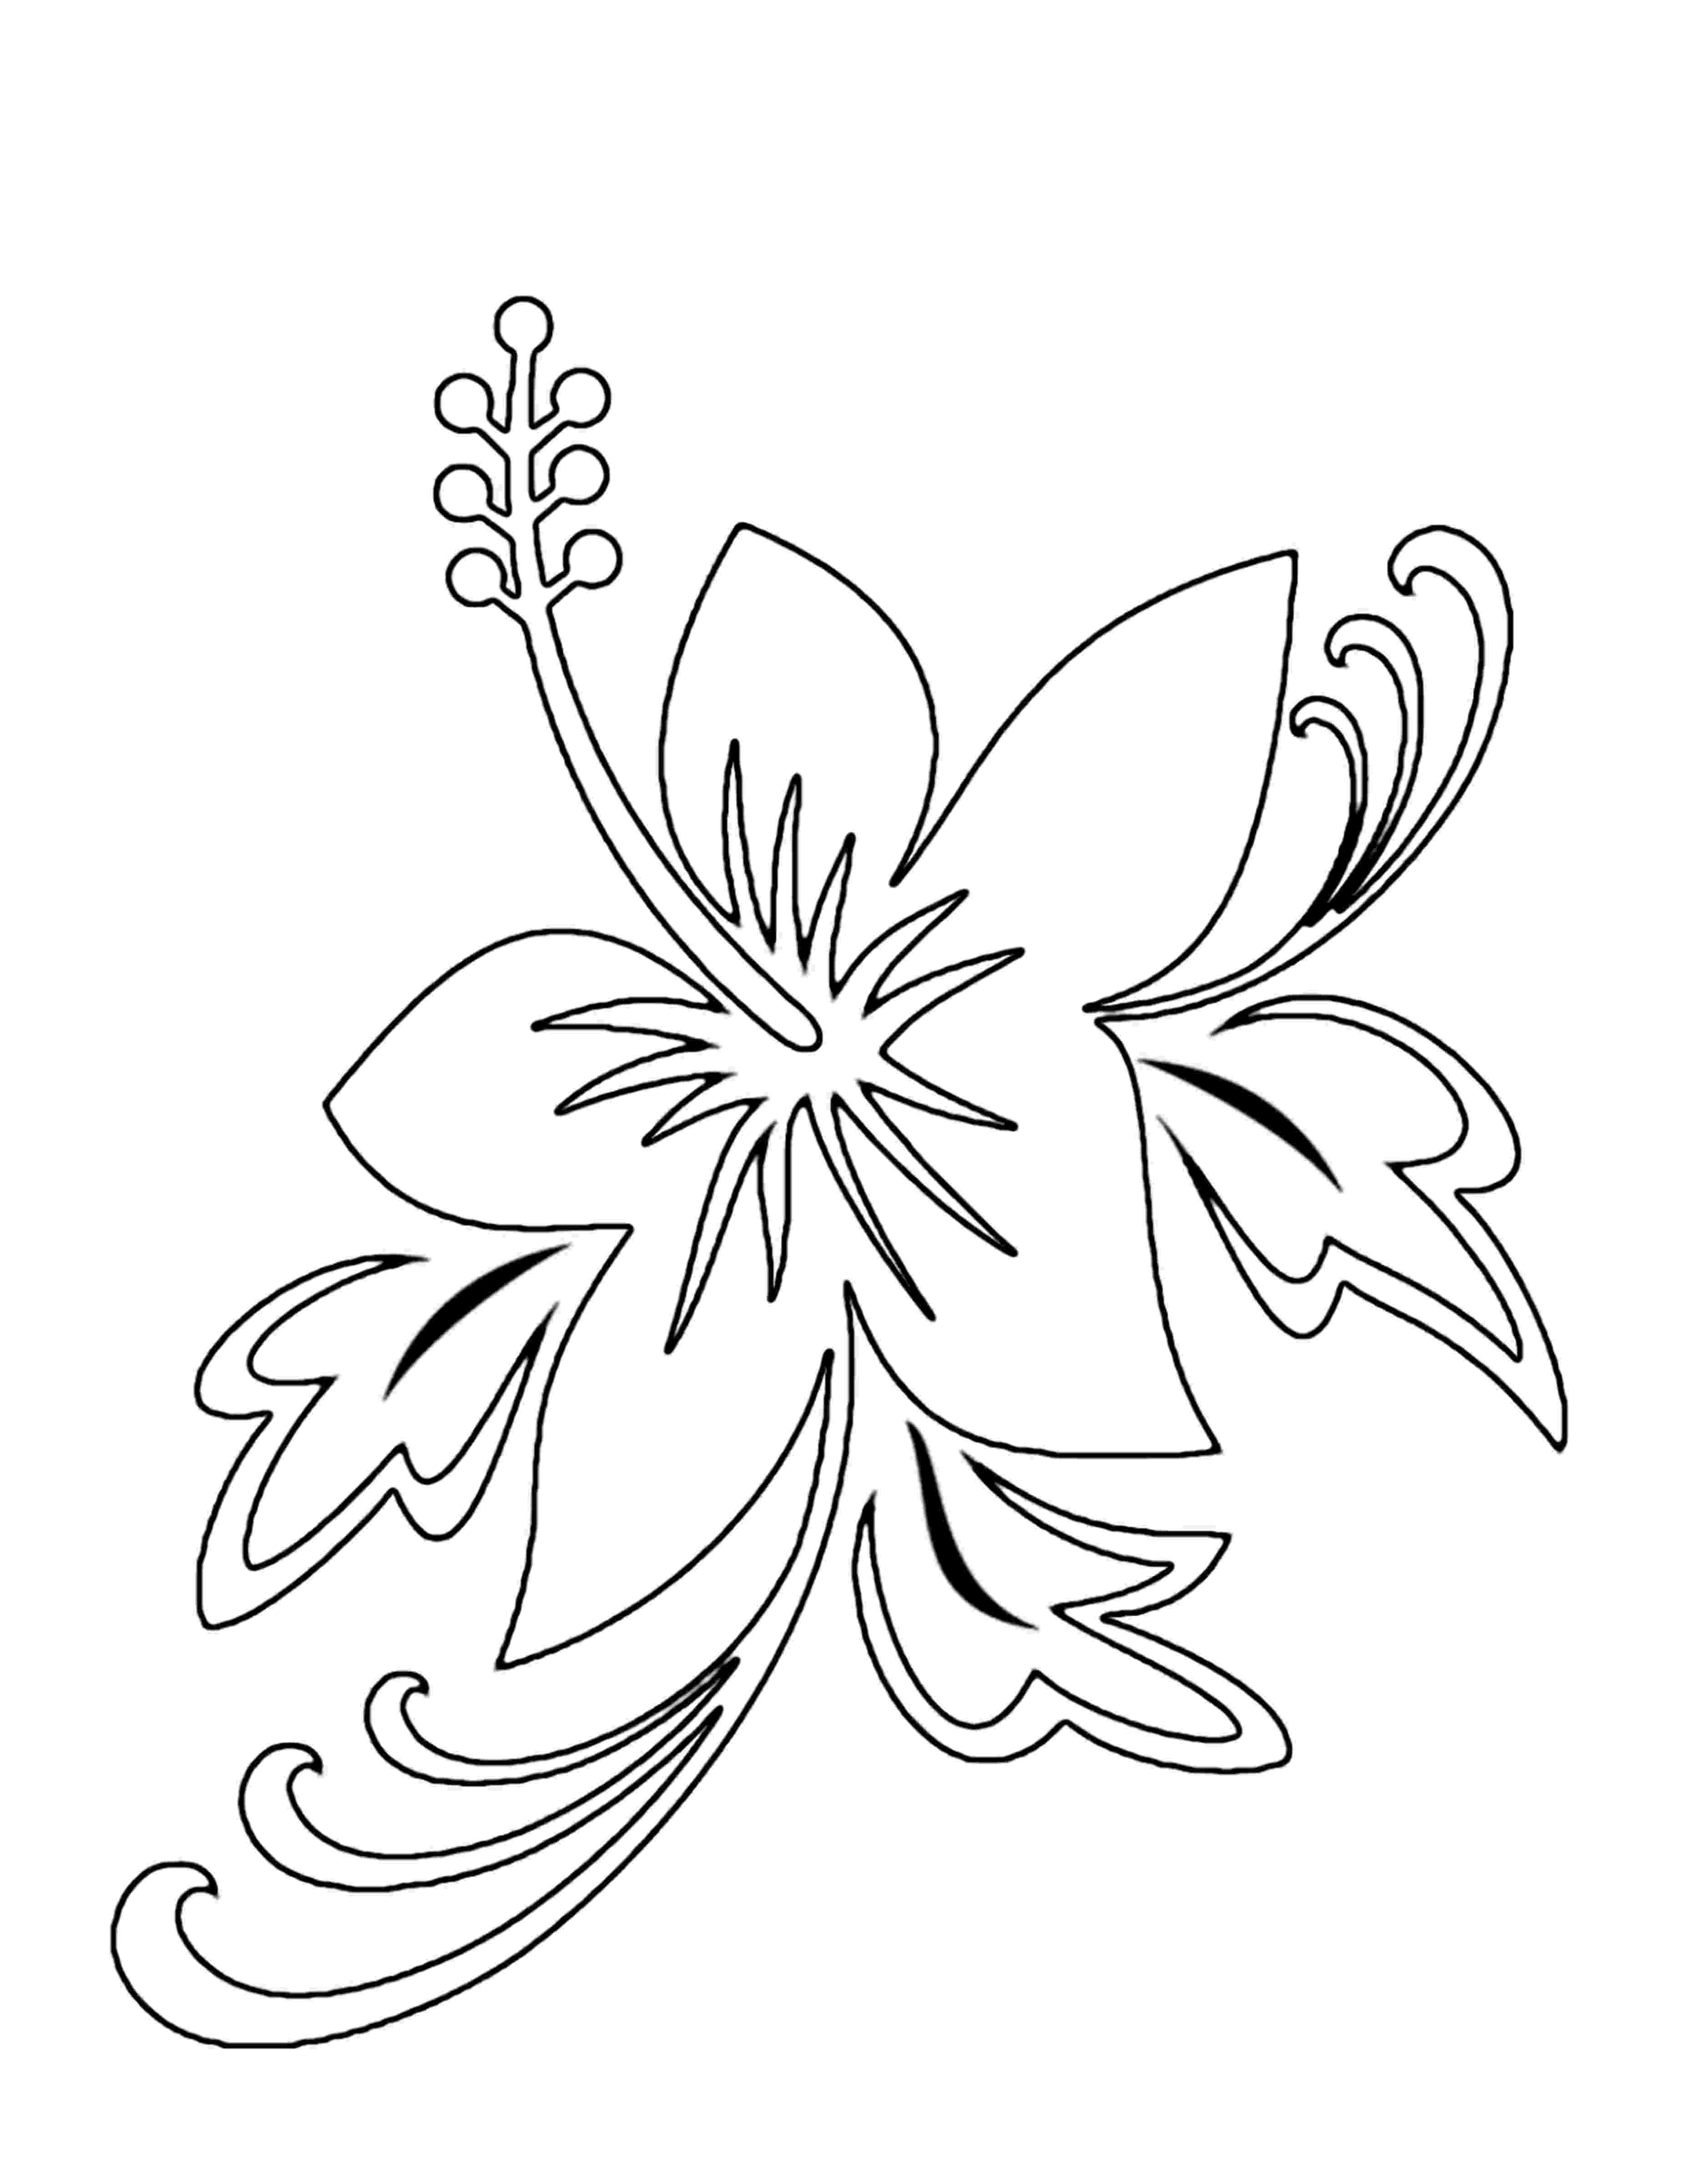 flowers color pages free printable flower coloring pages for kids cool2bkids color flowers pages